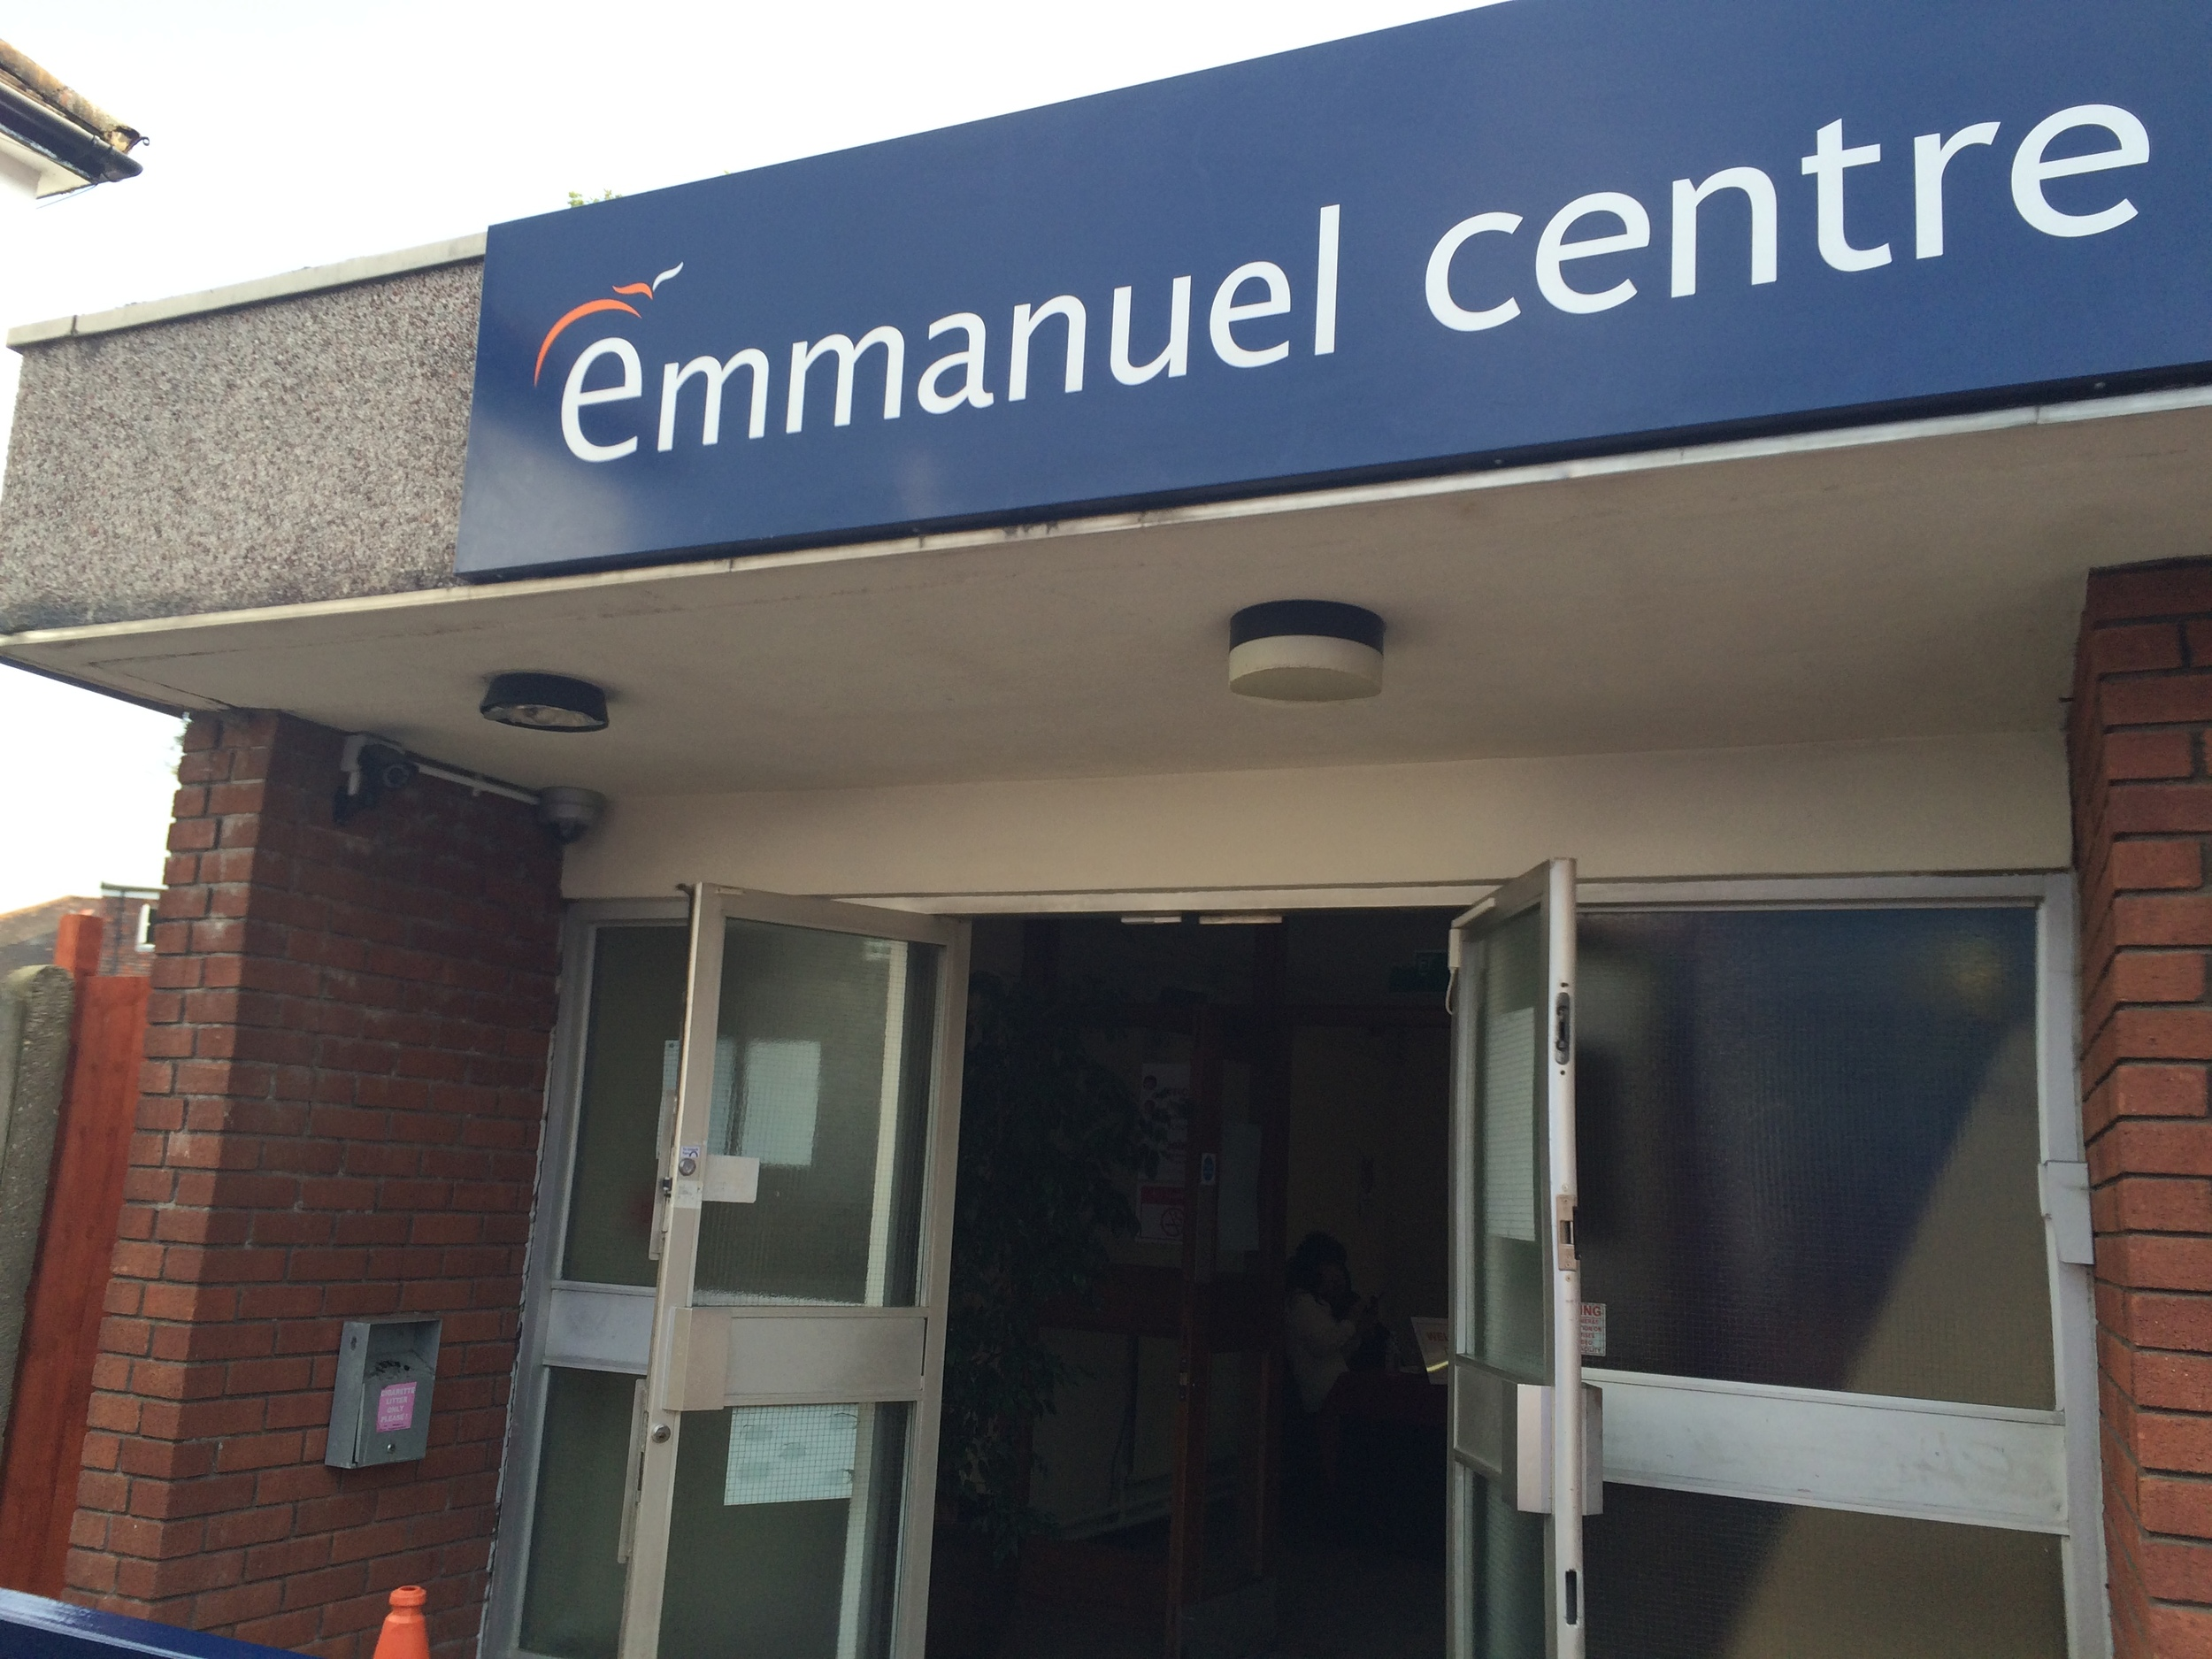 2015  - Acquisition of Emmanuel Centre Edgware building